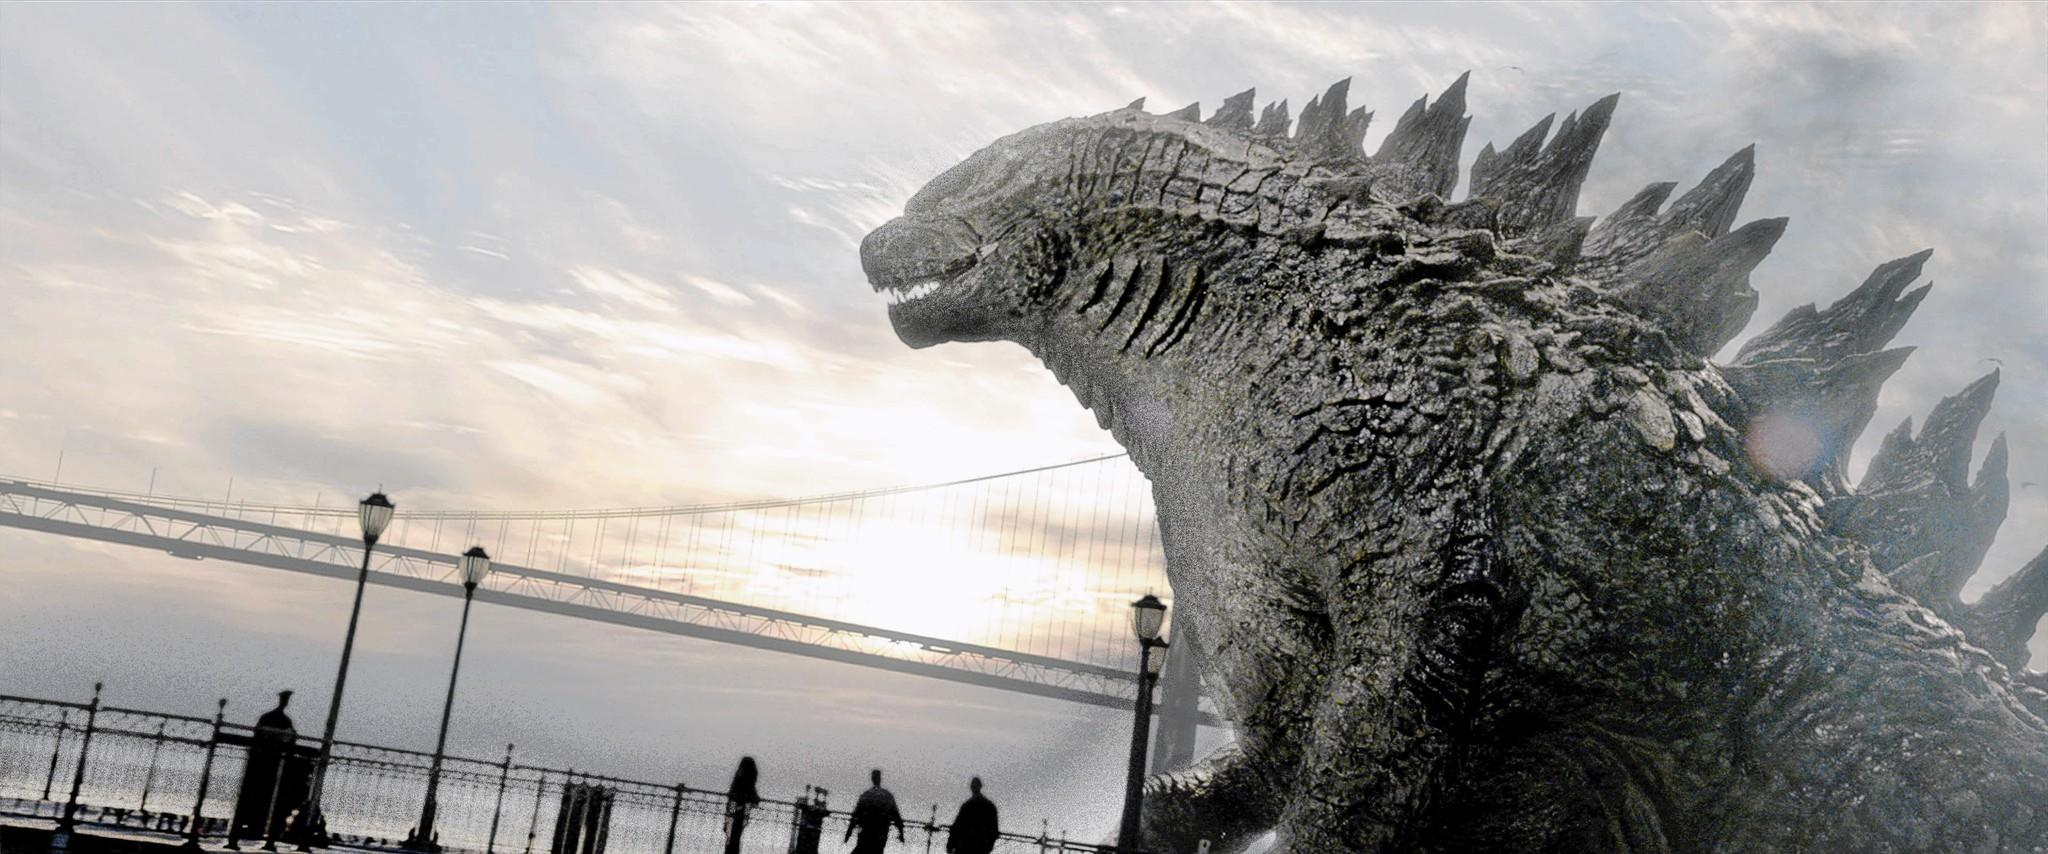 The new Godzilla